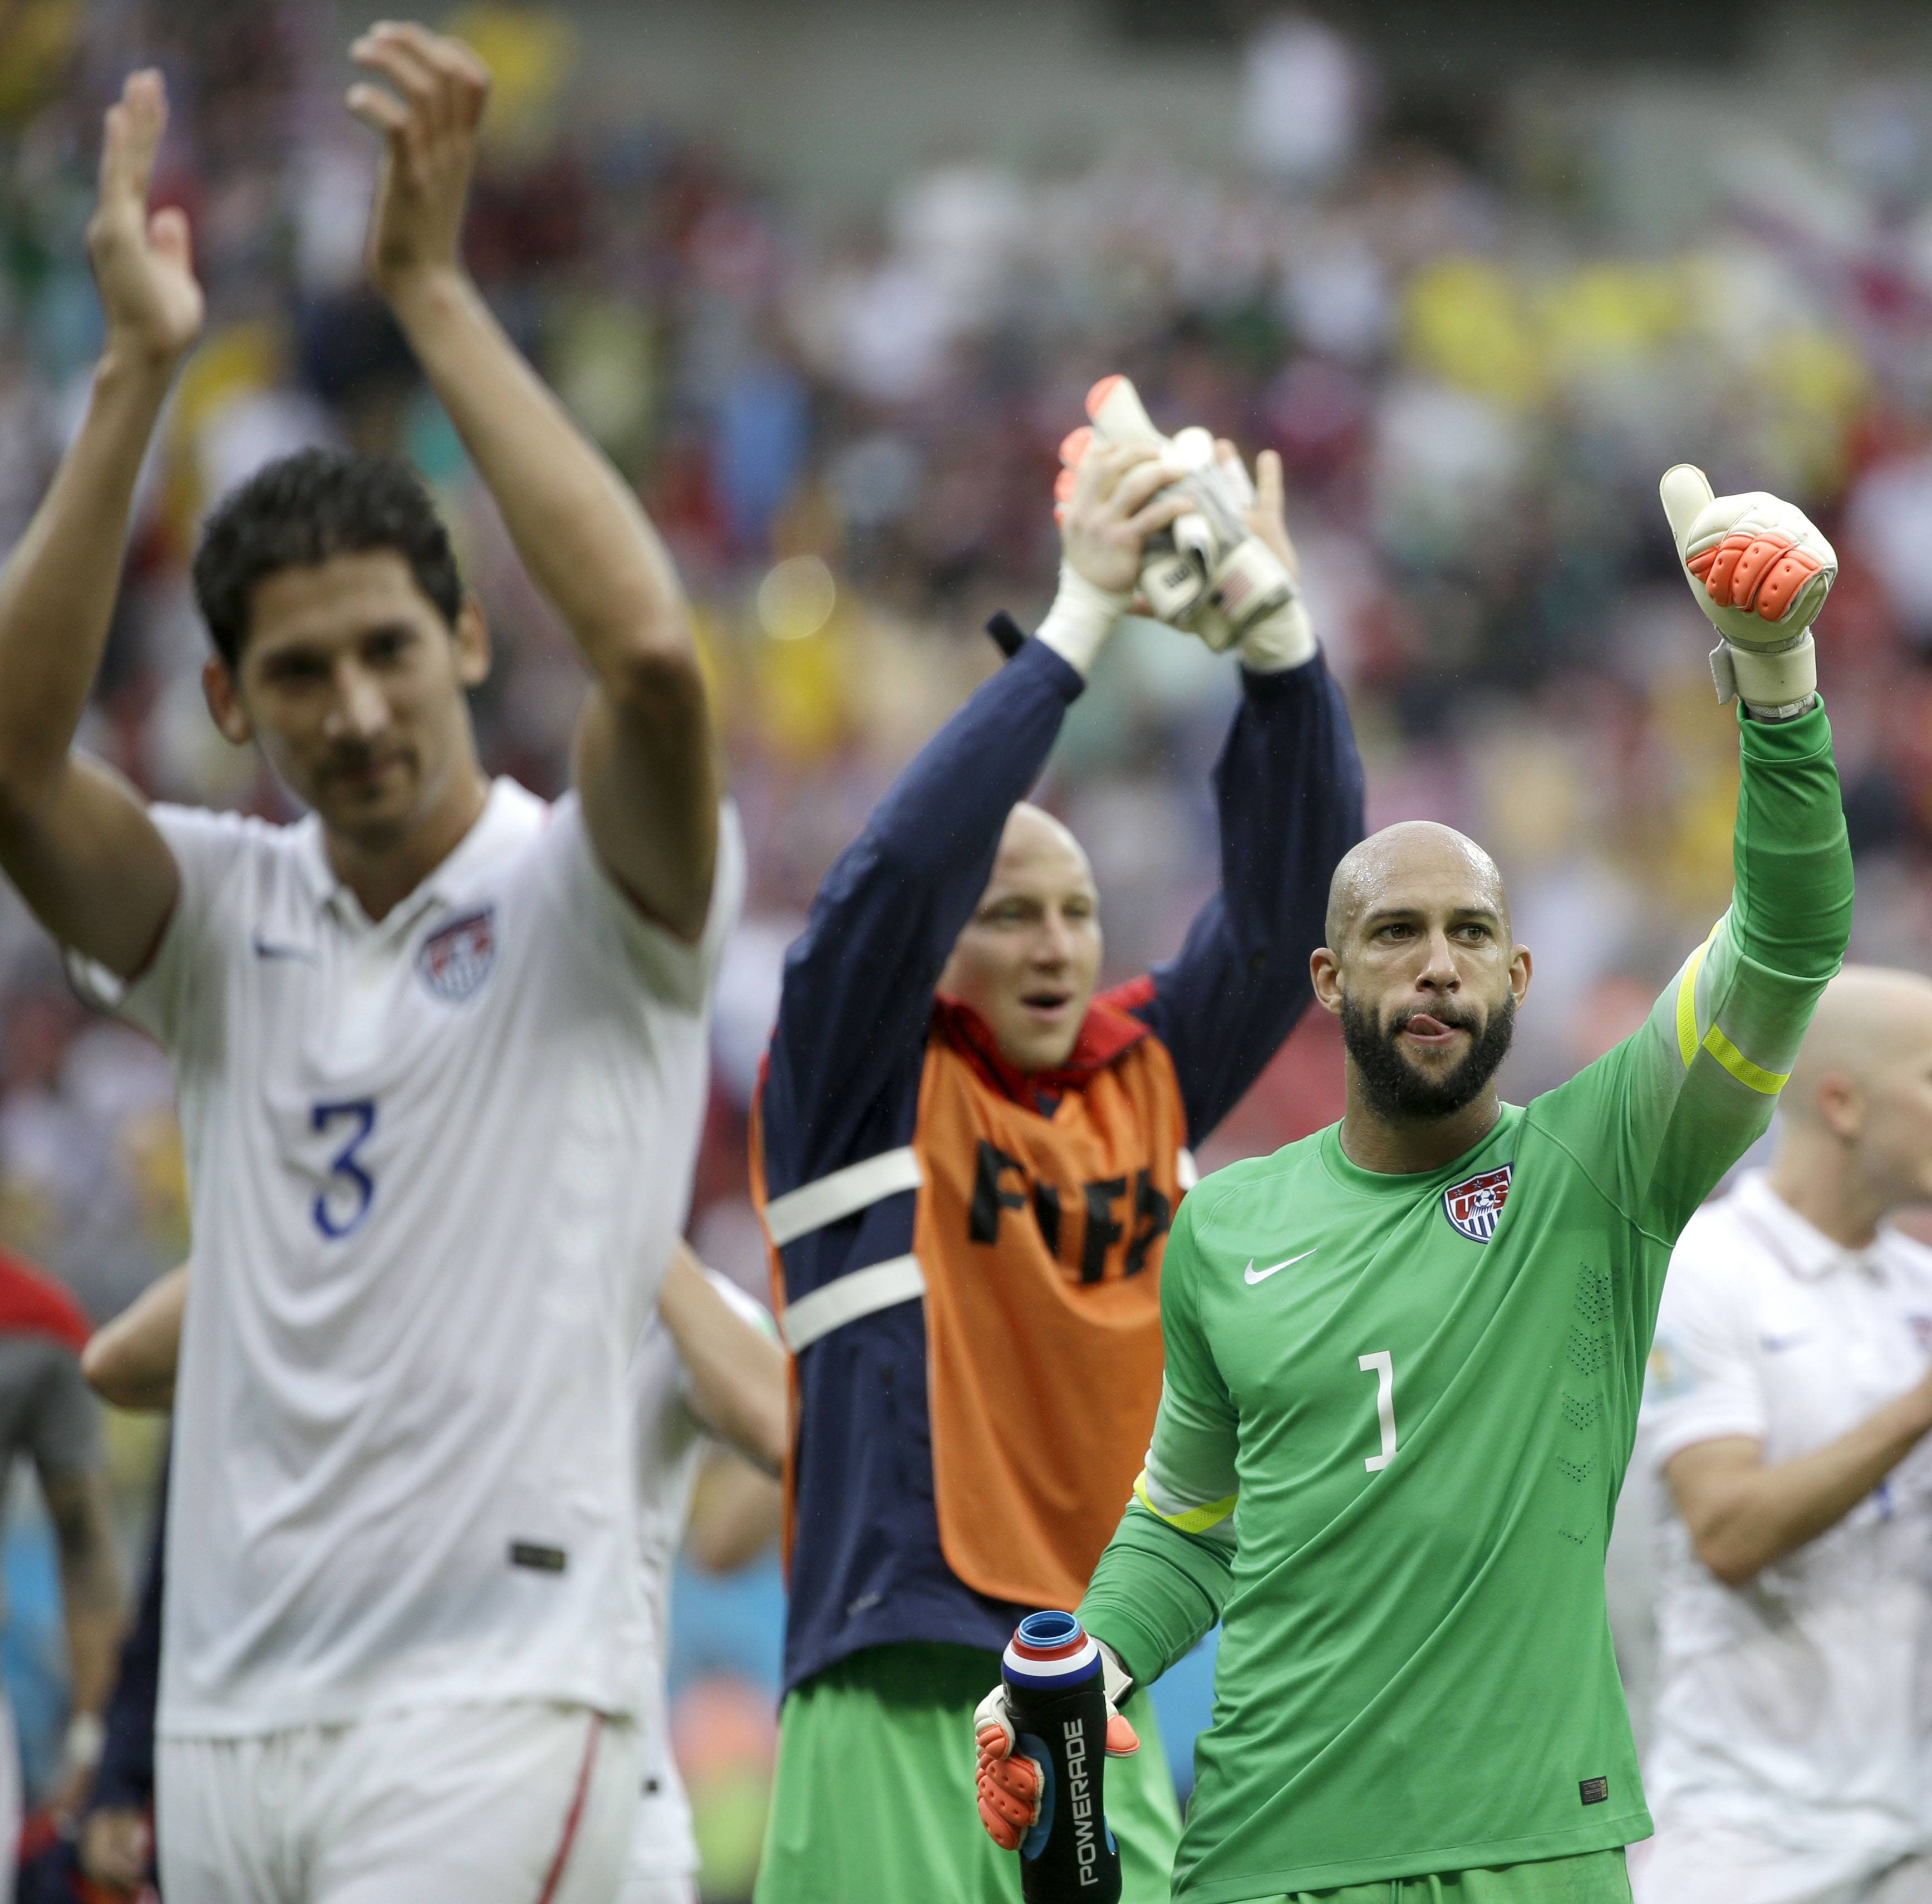 United States' goalkeeper Tim Howard (1) and his teammates celebrate after qualifying for the next World Cup round following their 1-0 loss to Germany during the group G World Cup soccer match between the USA and Germany at the Arena Pernambuco in Recife, Brazil, Thursday, June 26, 2014.